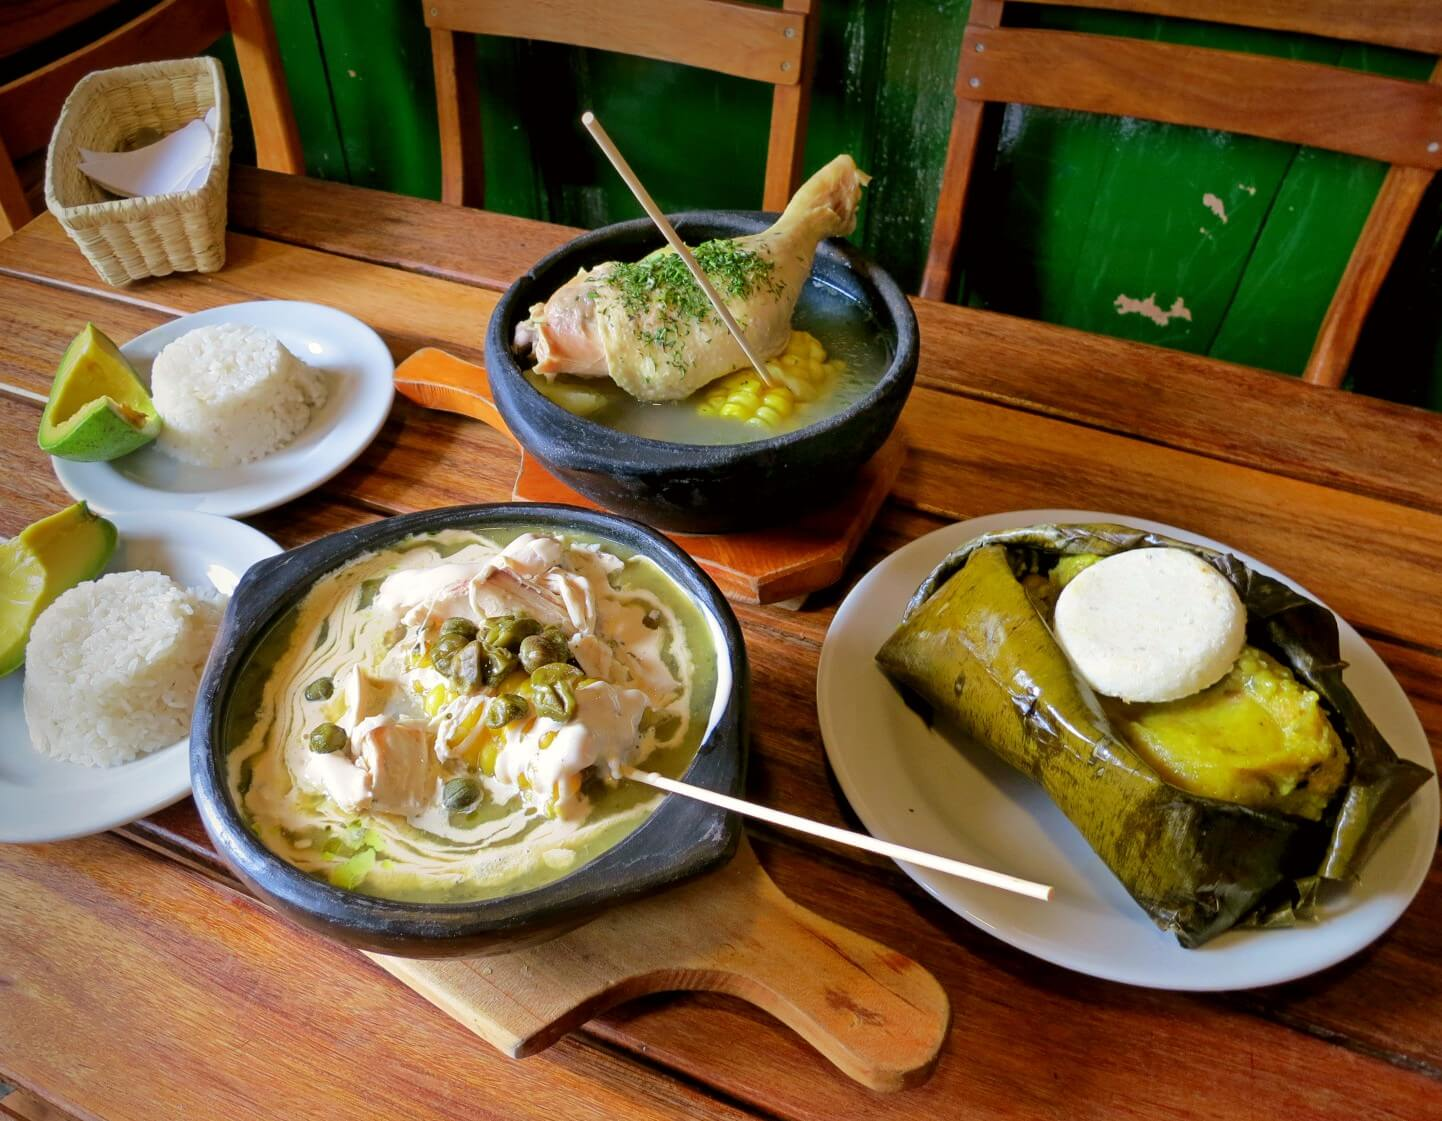 Ajiaco soup, sanchocho, and a giant Colombian tamale with a fluffy arepa! Ajiaco, sancocho, and arepas are all on our list of what to eat in Colombia.